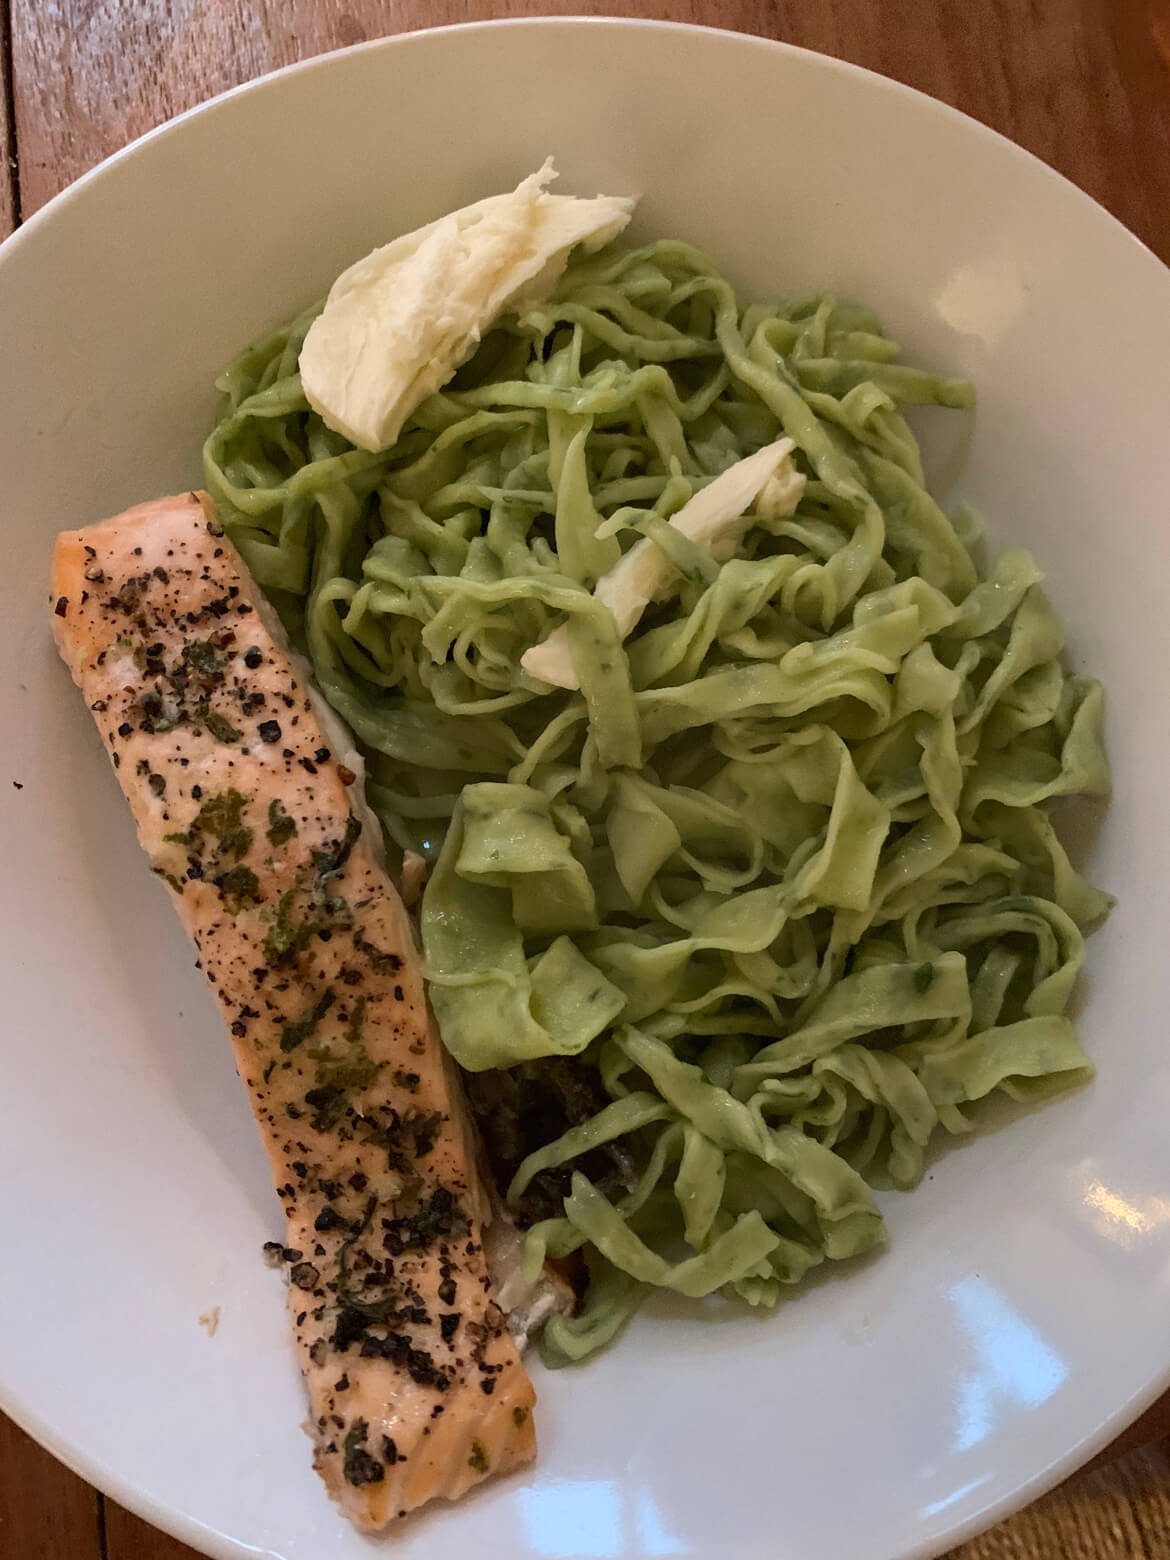 Wild garlic pasta recipe - home made pasta dough, cooked and served with oven baked salmon.